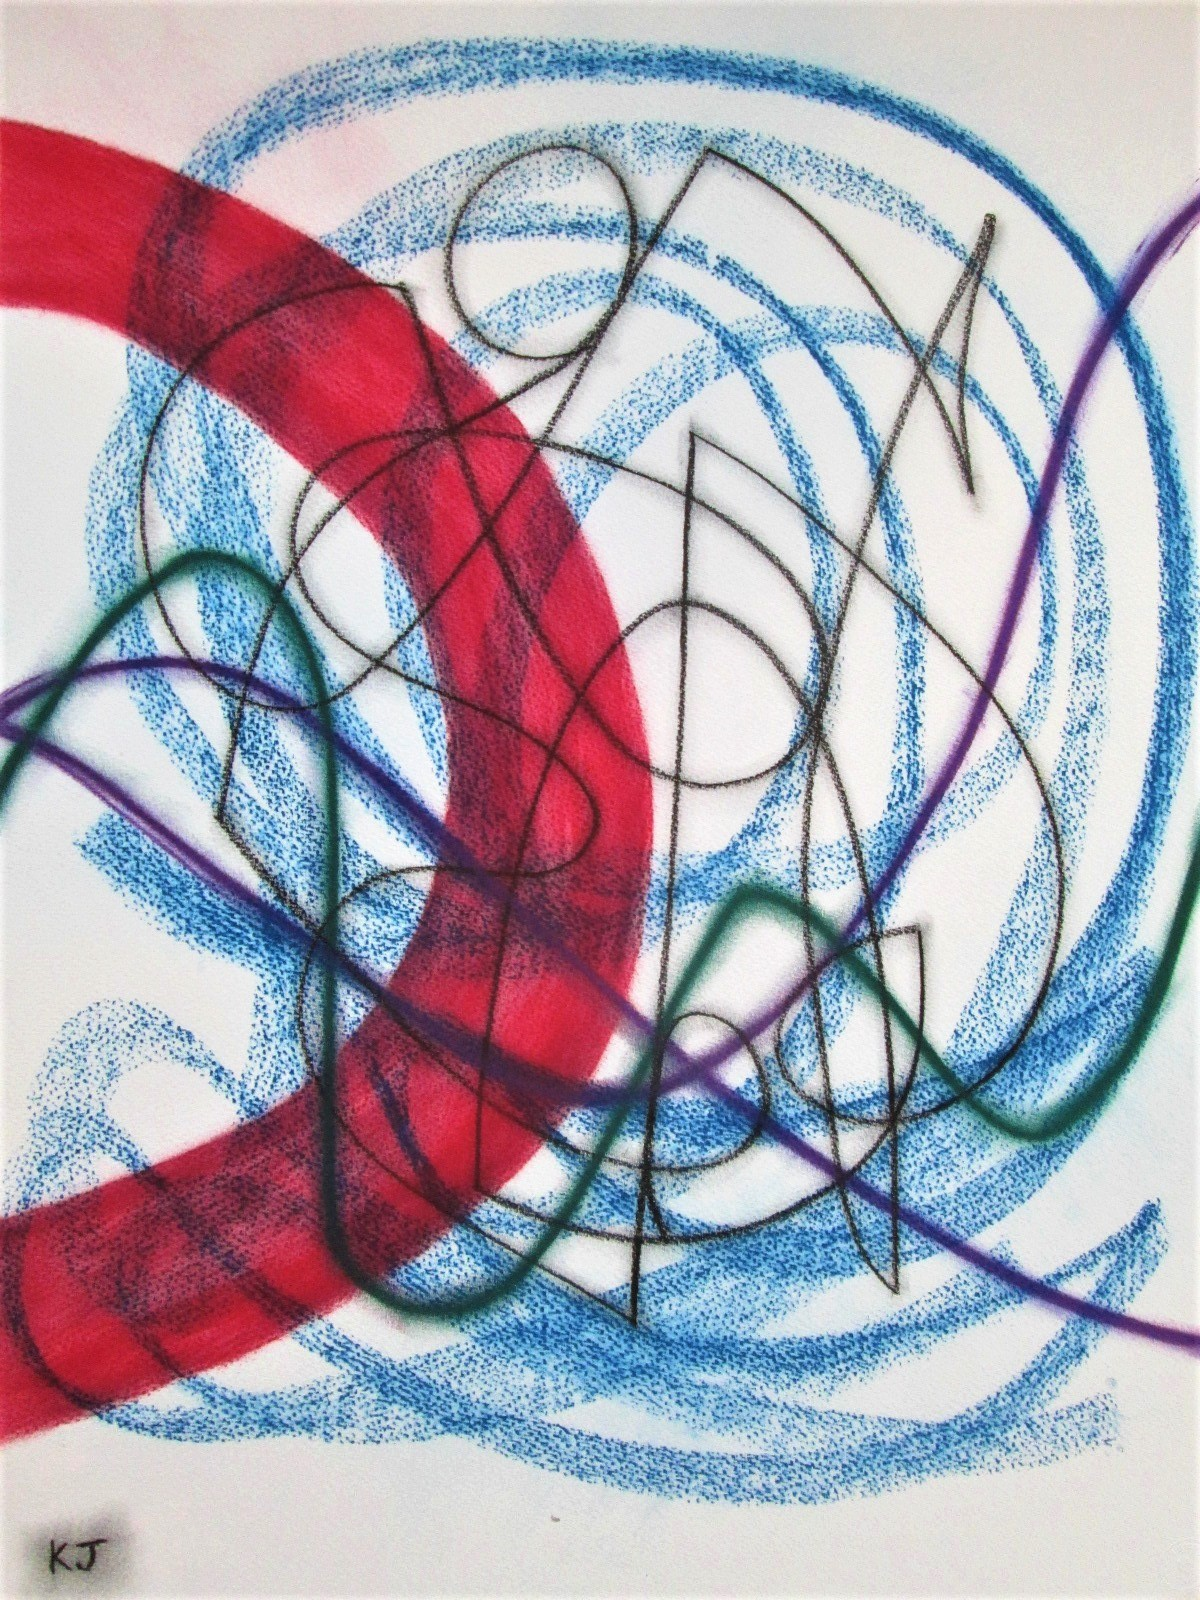 Composition on Red No 2 artwork by Kevin Jones - art listed for sale on Artplode